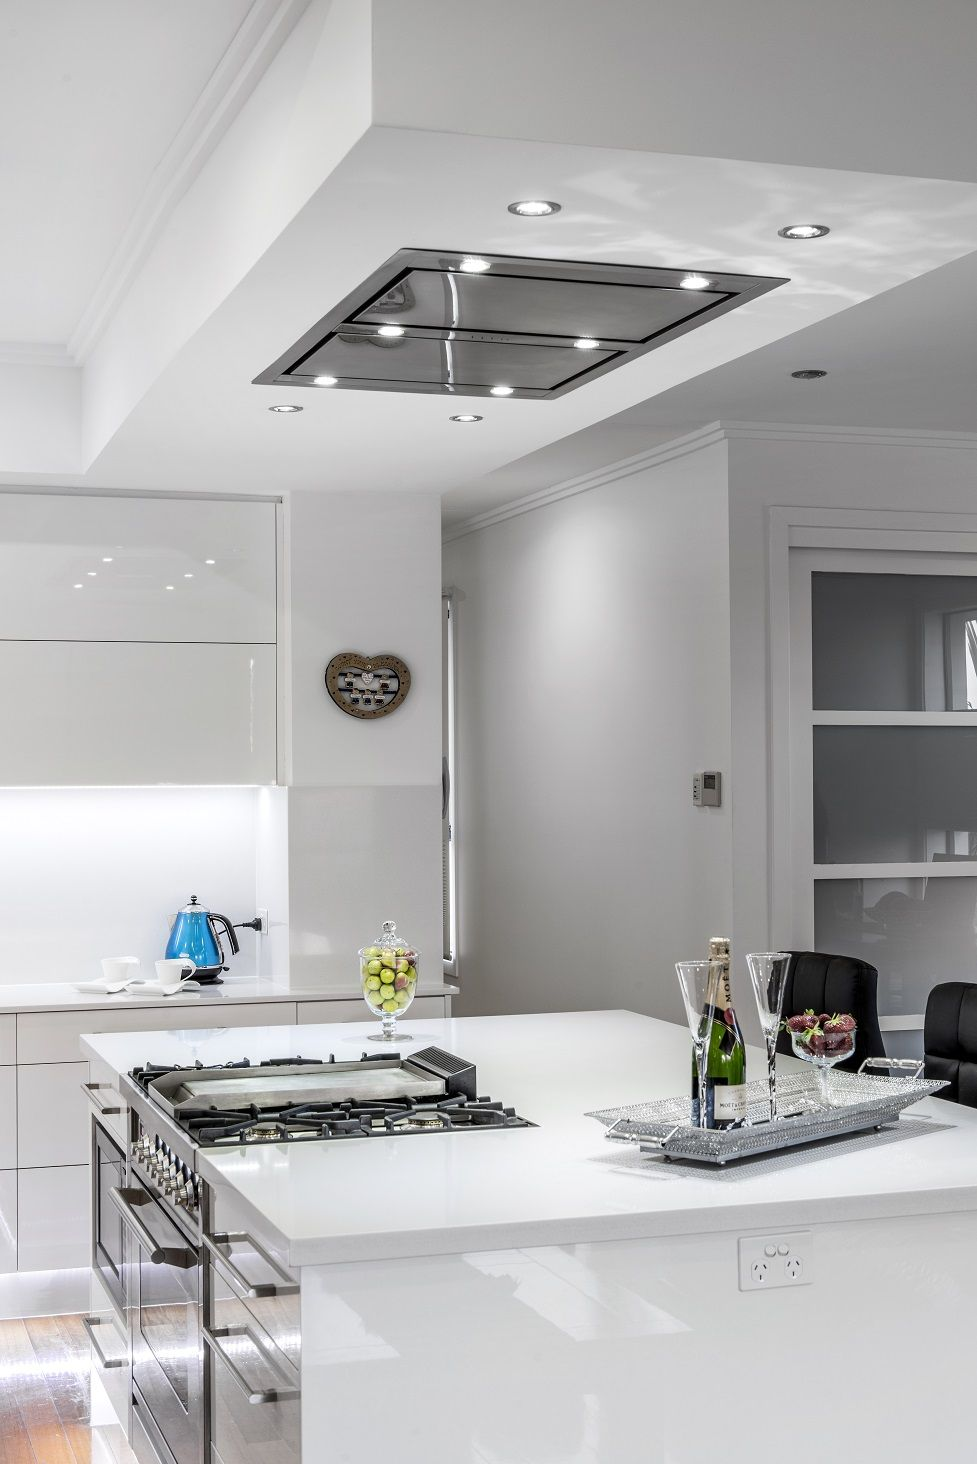 Ceiling And Casette Rangehoods The Alternative To